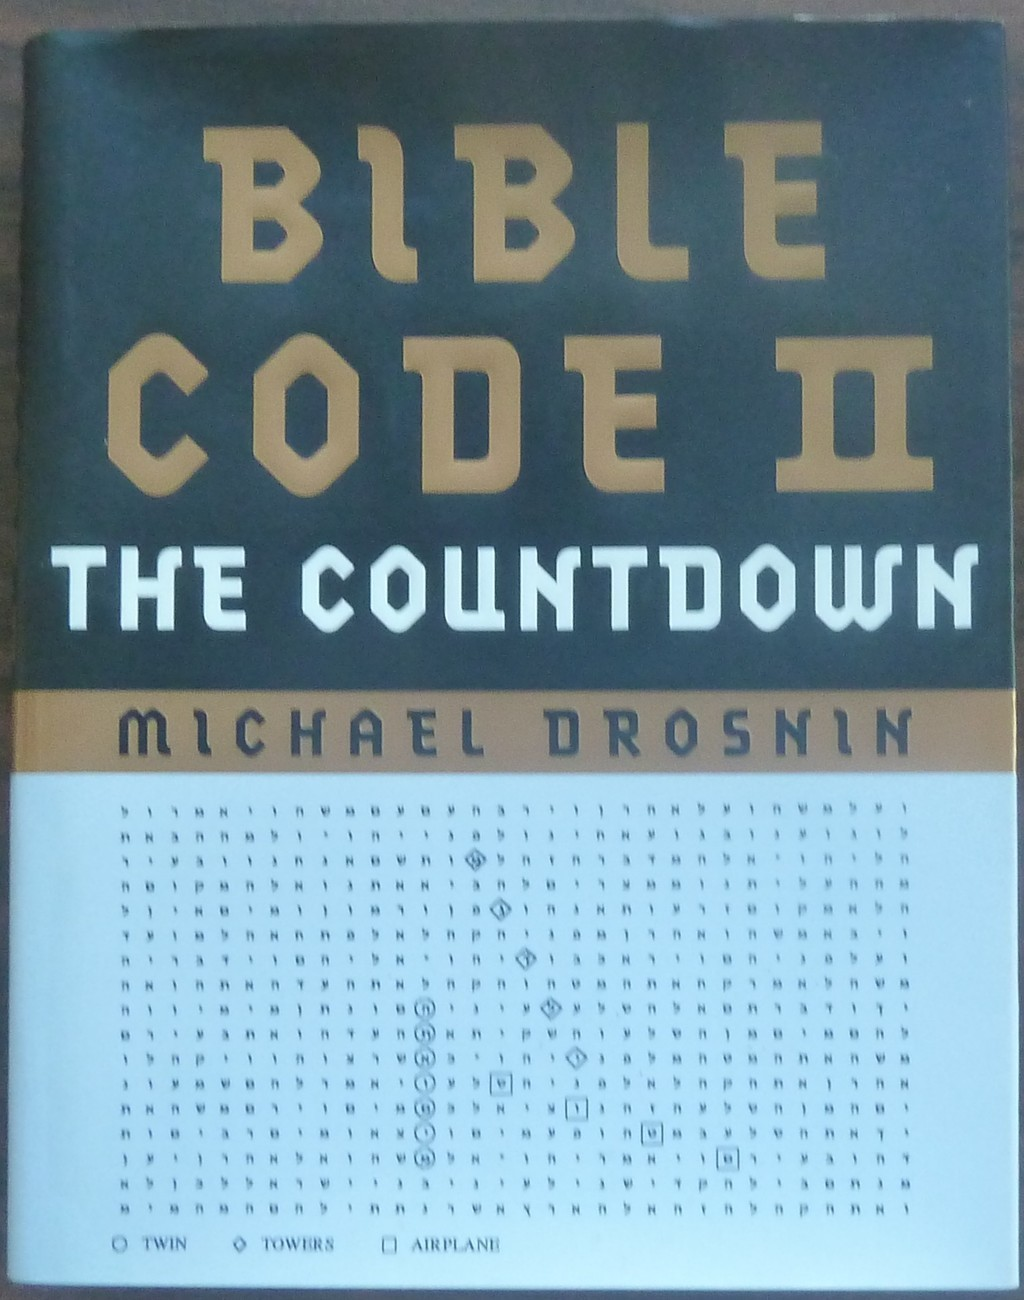 The Bible Code II by Michael Drosnin